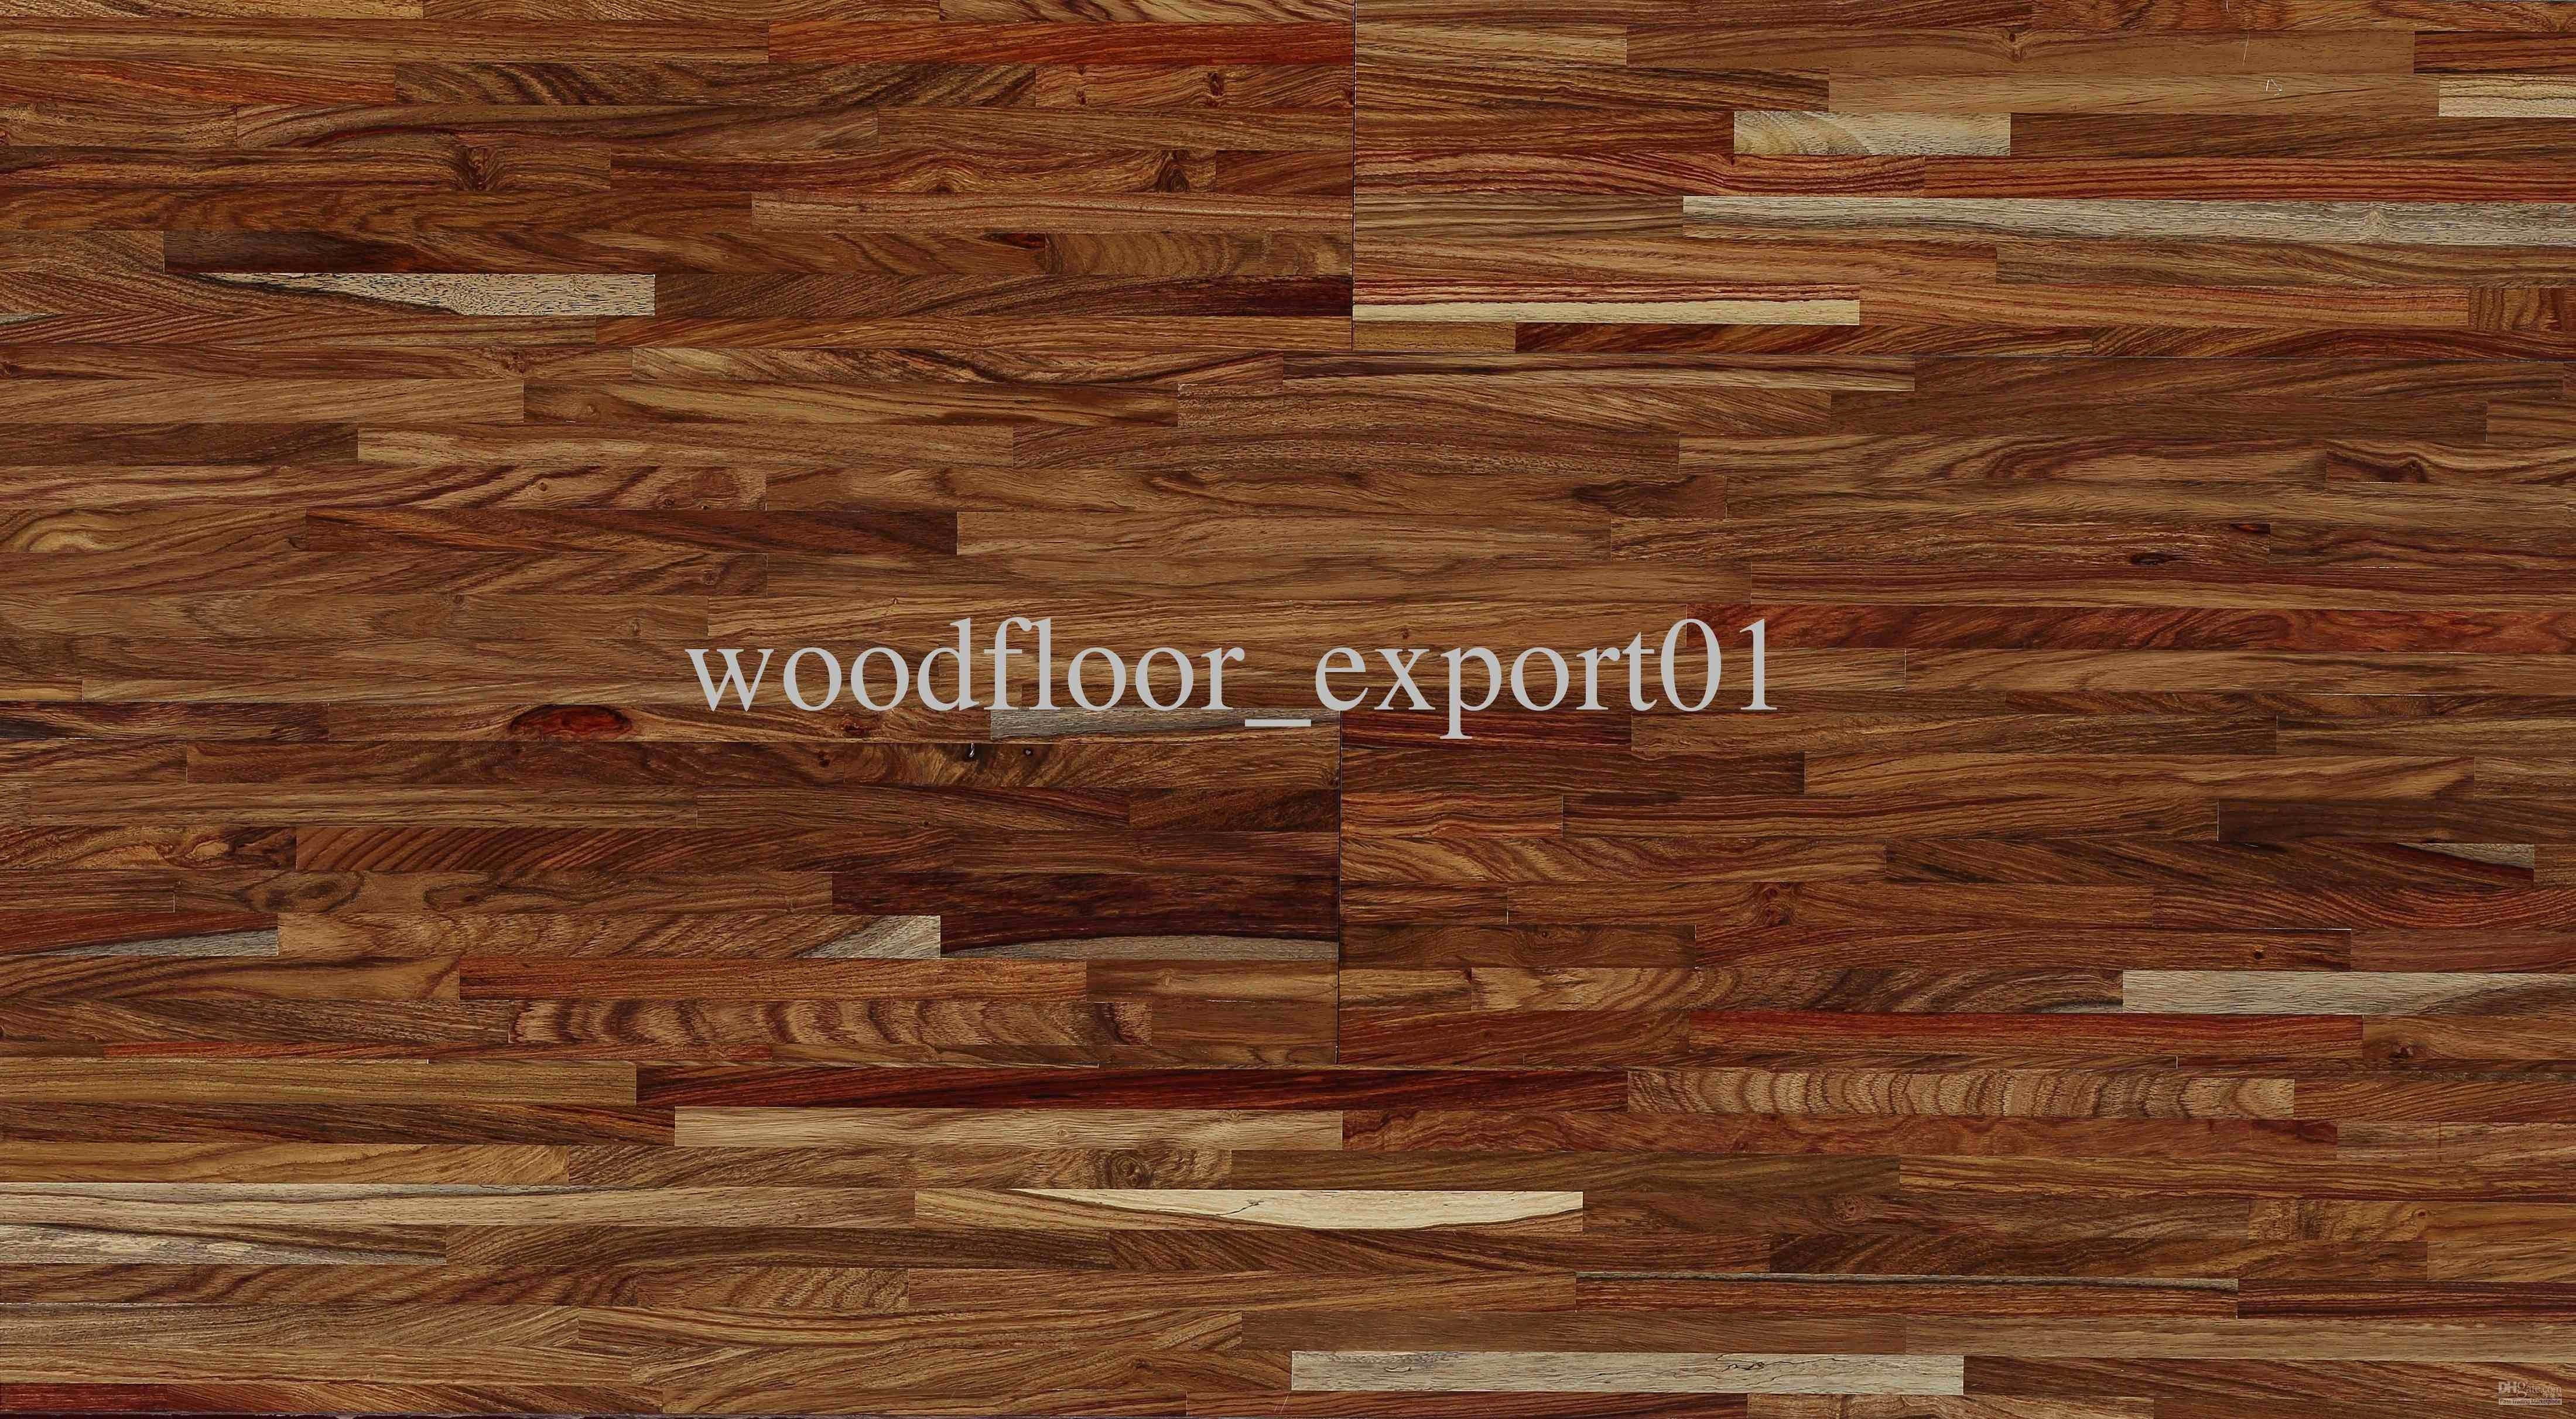 types of solid hardwood floors of 15 unique types of hardwood flooring image dizpos com in types of hardwood flooring awesome 50 inspirational sanding and refinishing hardwood floors graphics image of 15